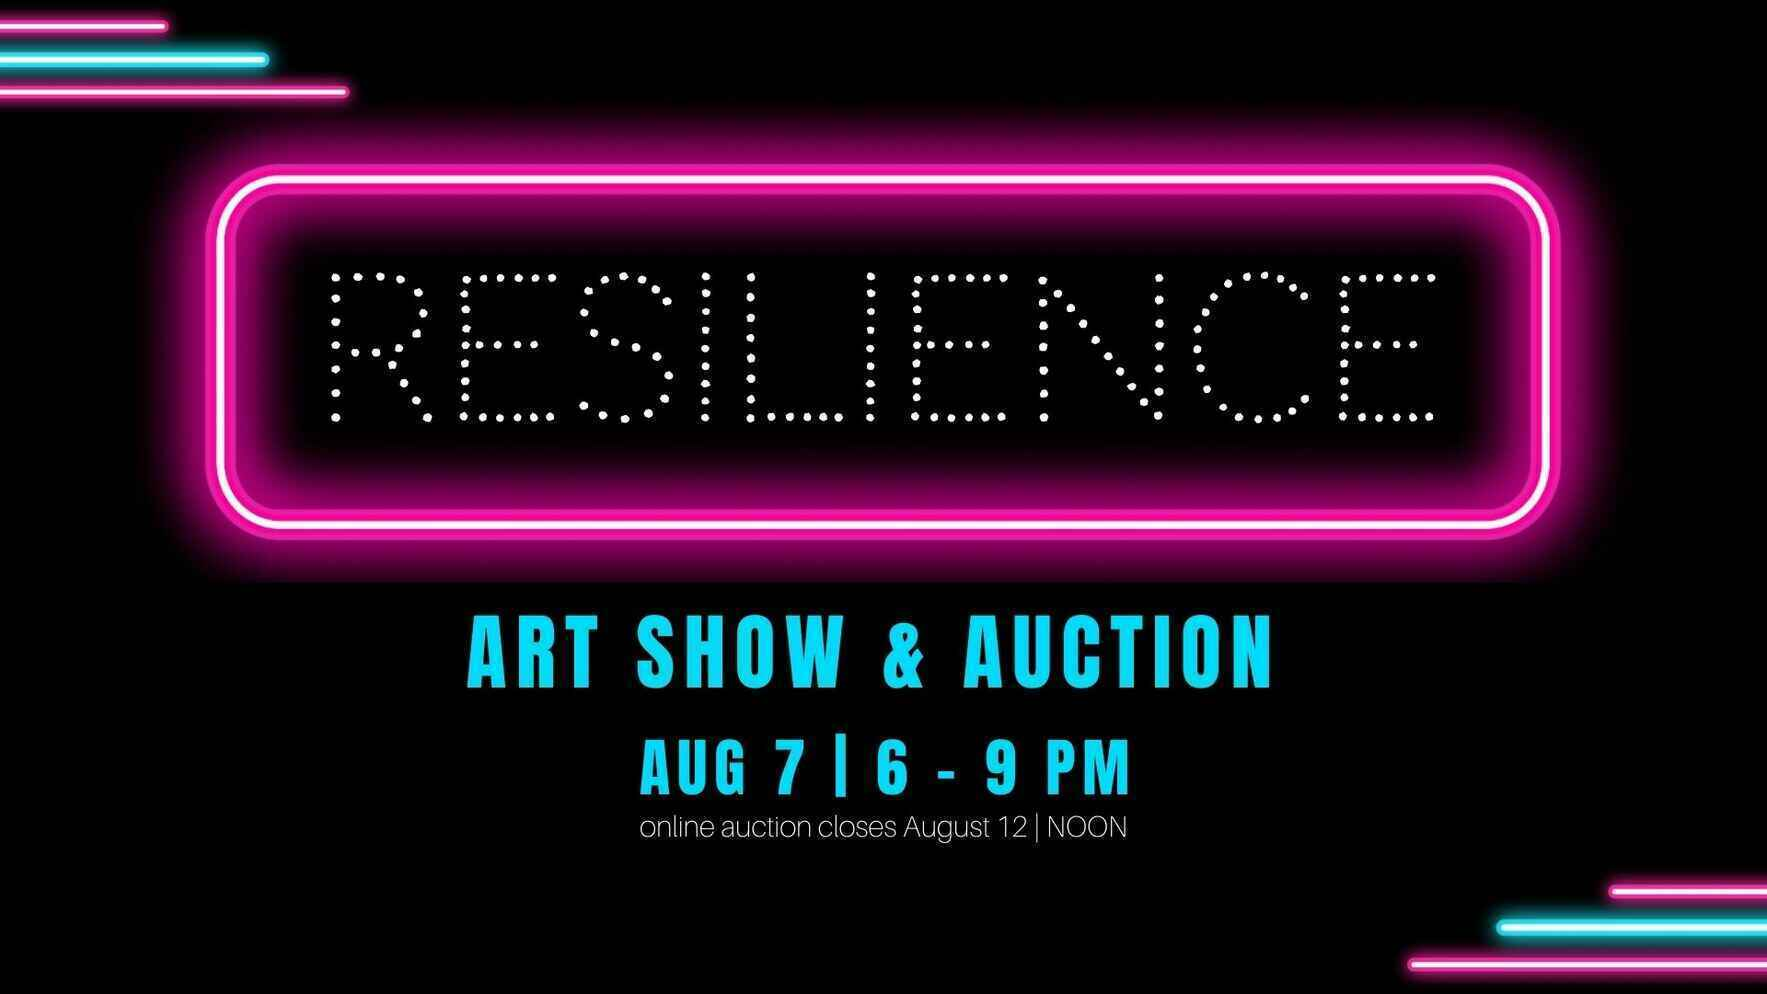 RESLILIENCE: Art Show & Auction for Calm Waters image